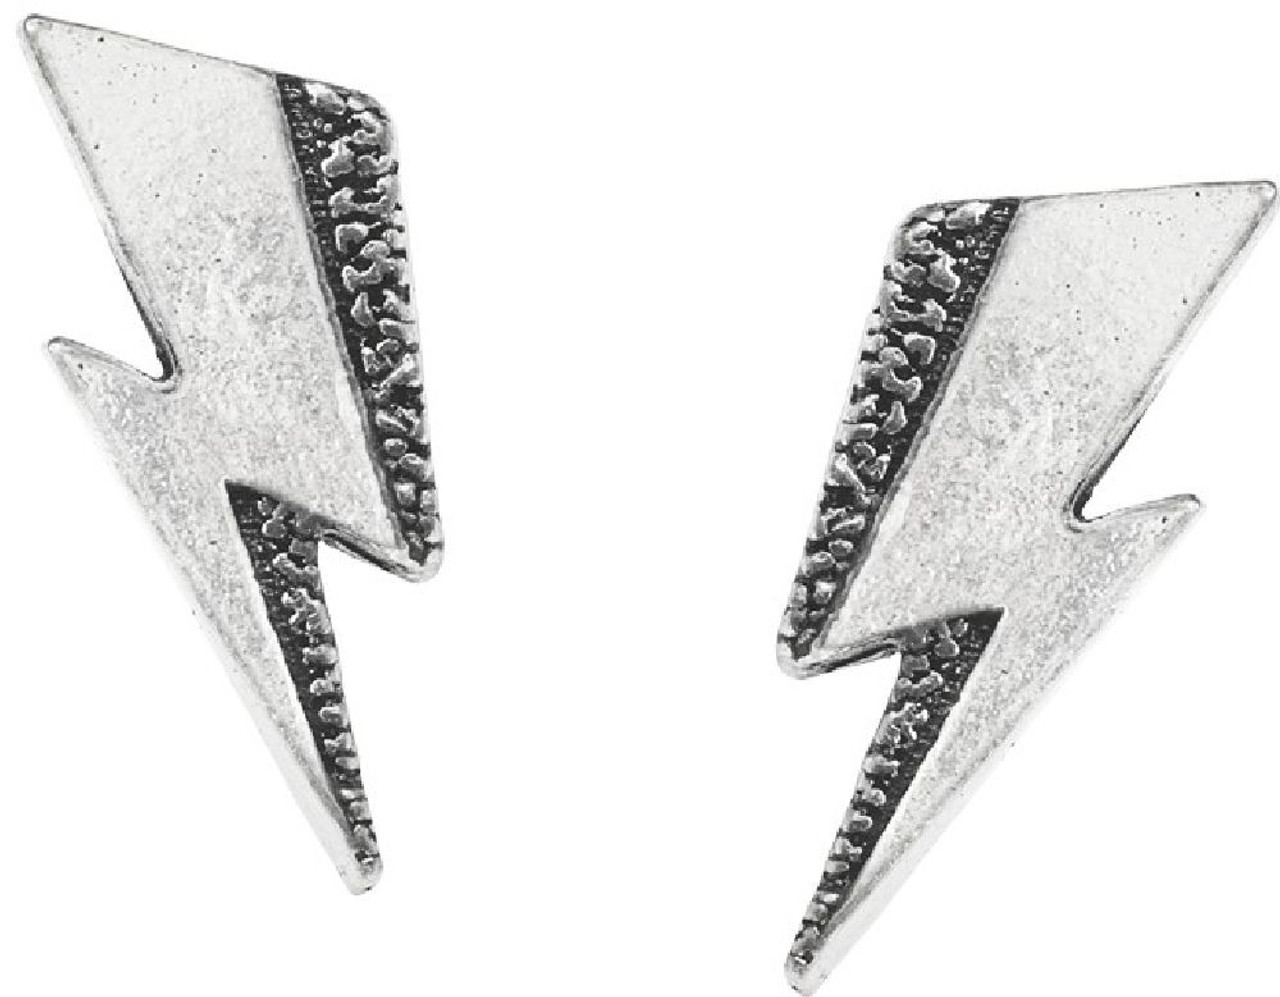 David Bowie Earrings by Alchemy of England - Lightning Bolt  Pewter with  Steel Ear Post